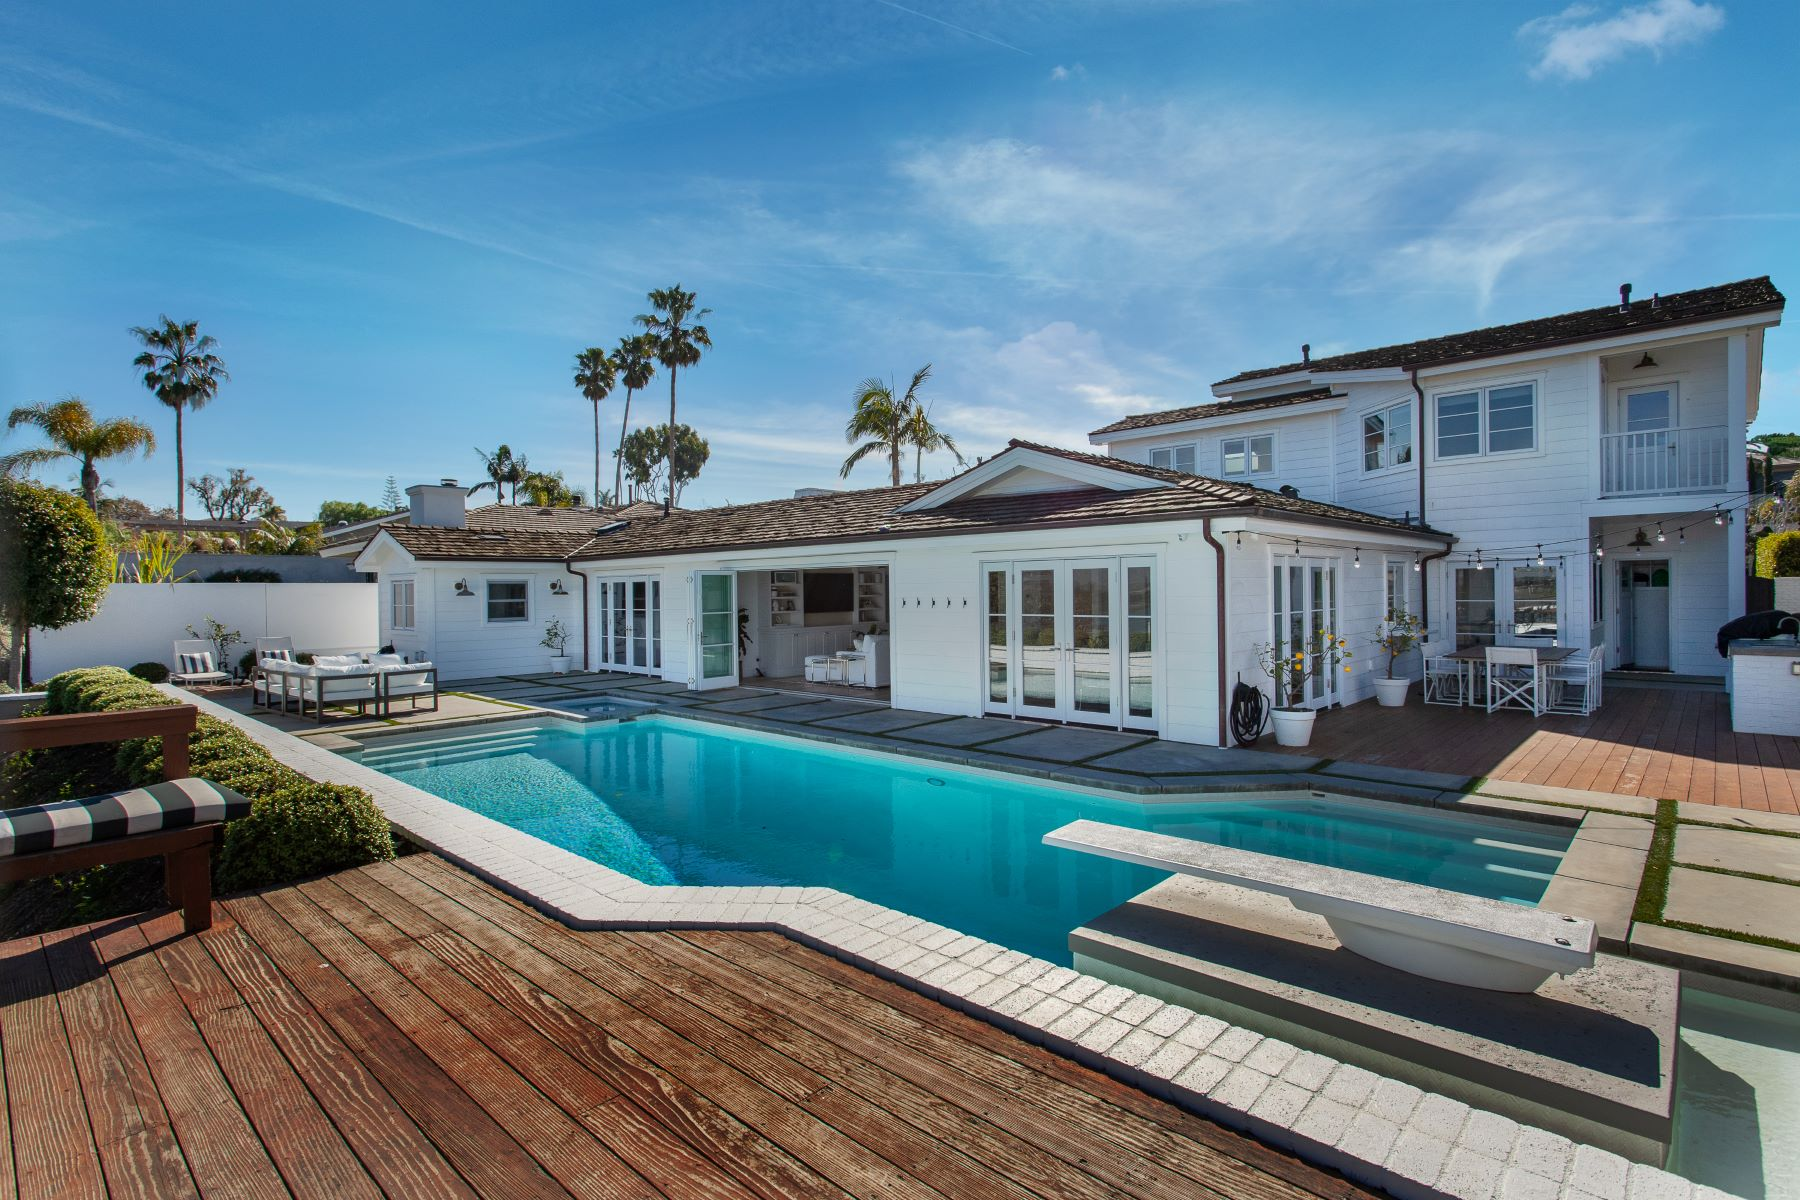 Single Family Homes for Active at 2106 Santiago Dr Newport Beach, California 92660 United States